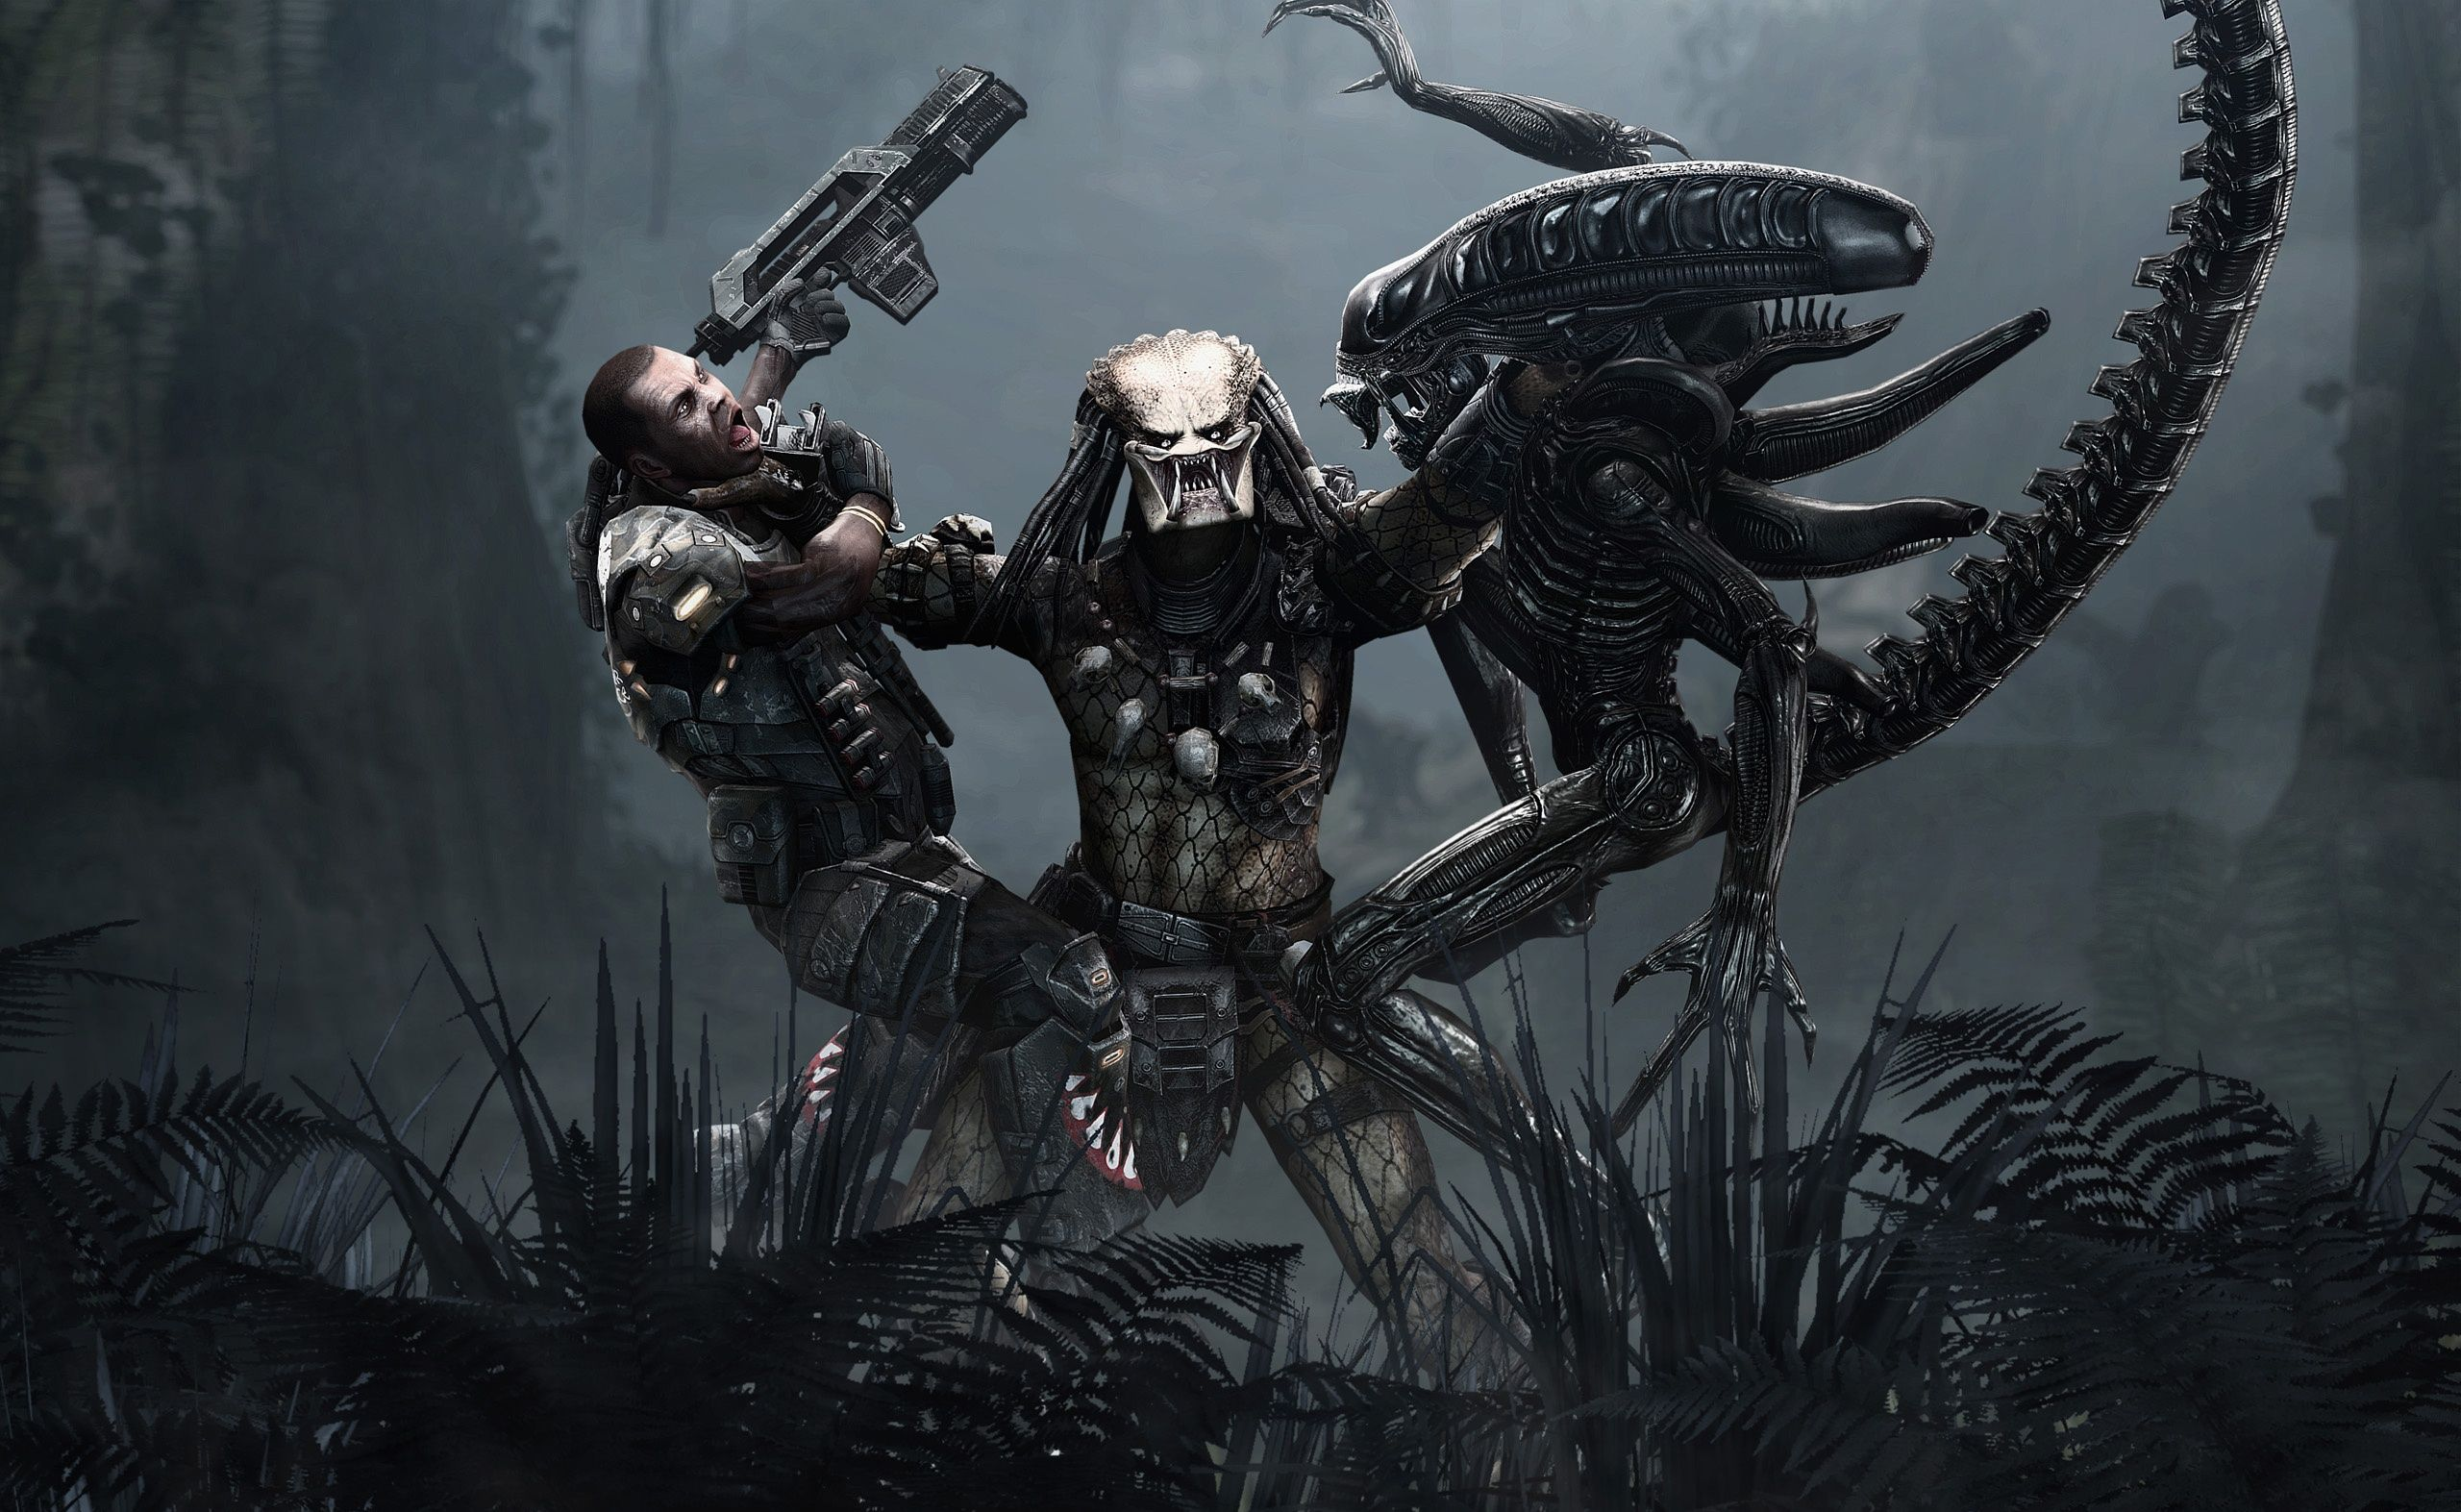 Alien Vs Predator Wallpapers Top Free Alien Vs Predator